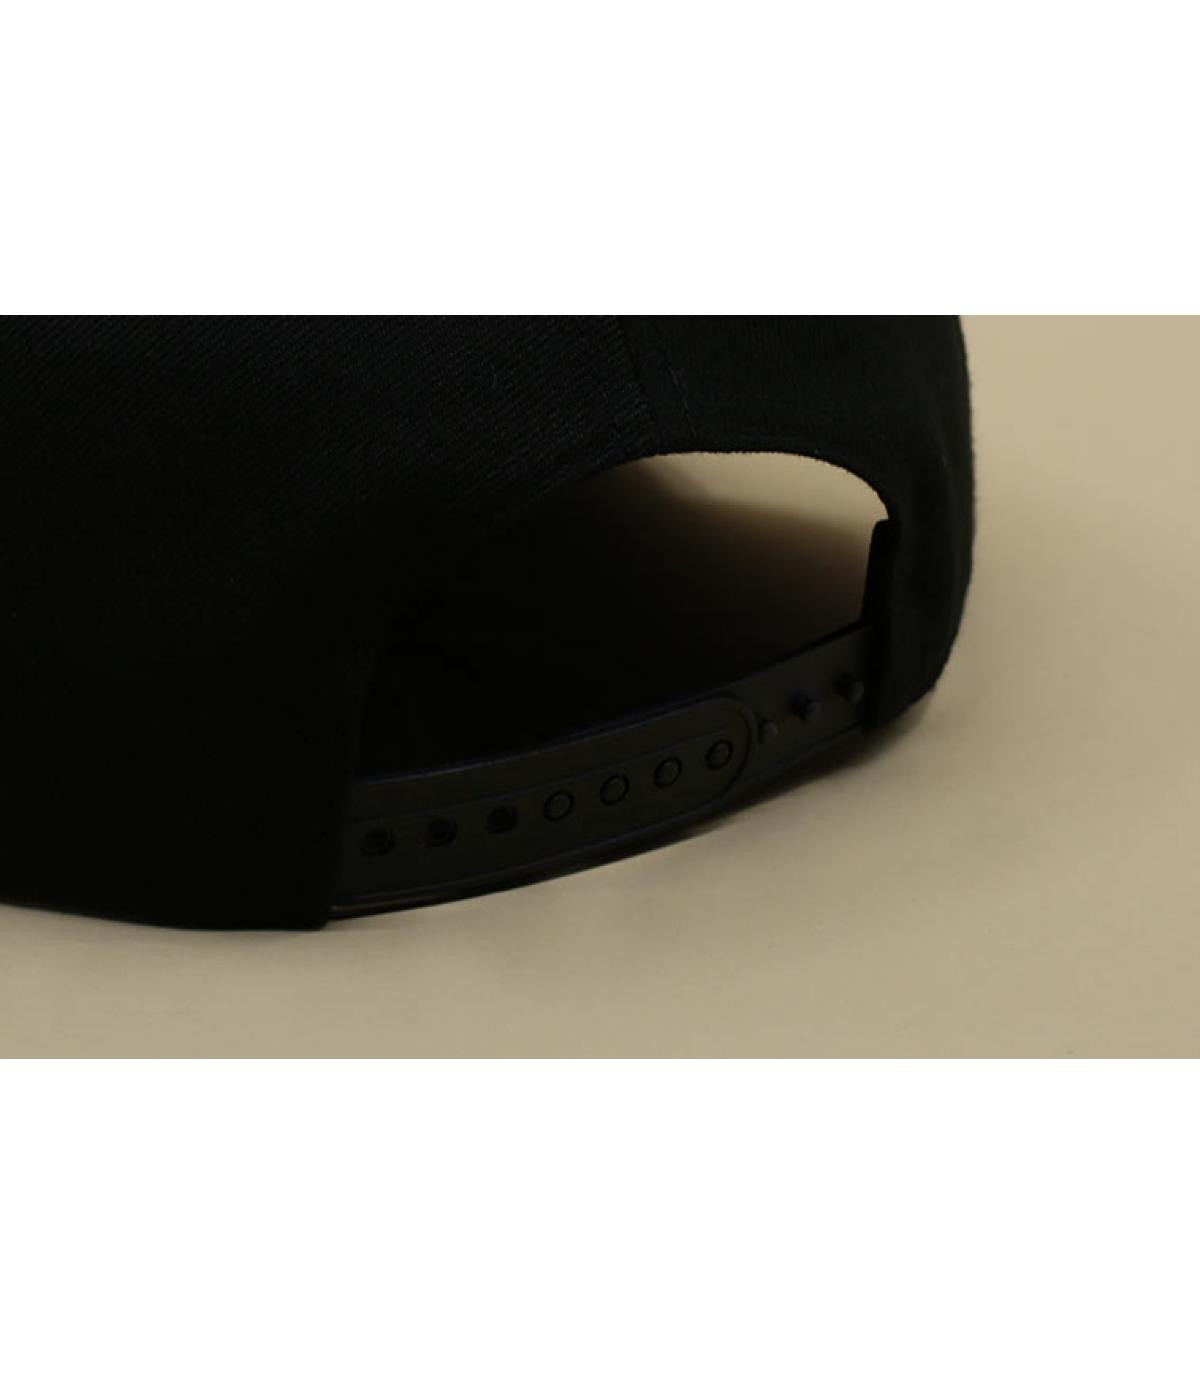 Details Snapback Call of Duty MW - afbeeling 4